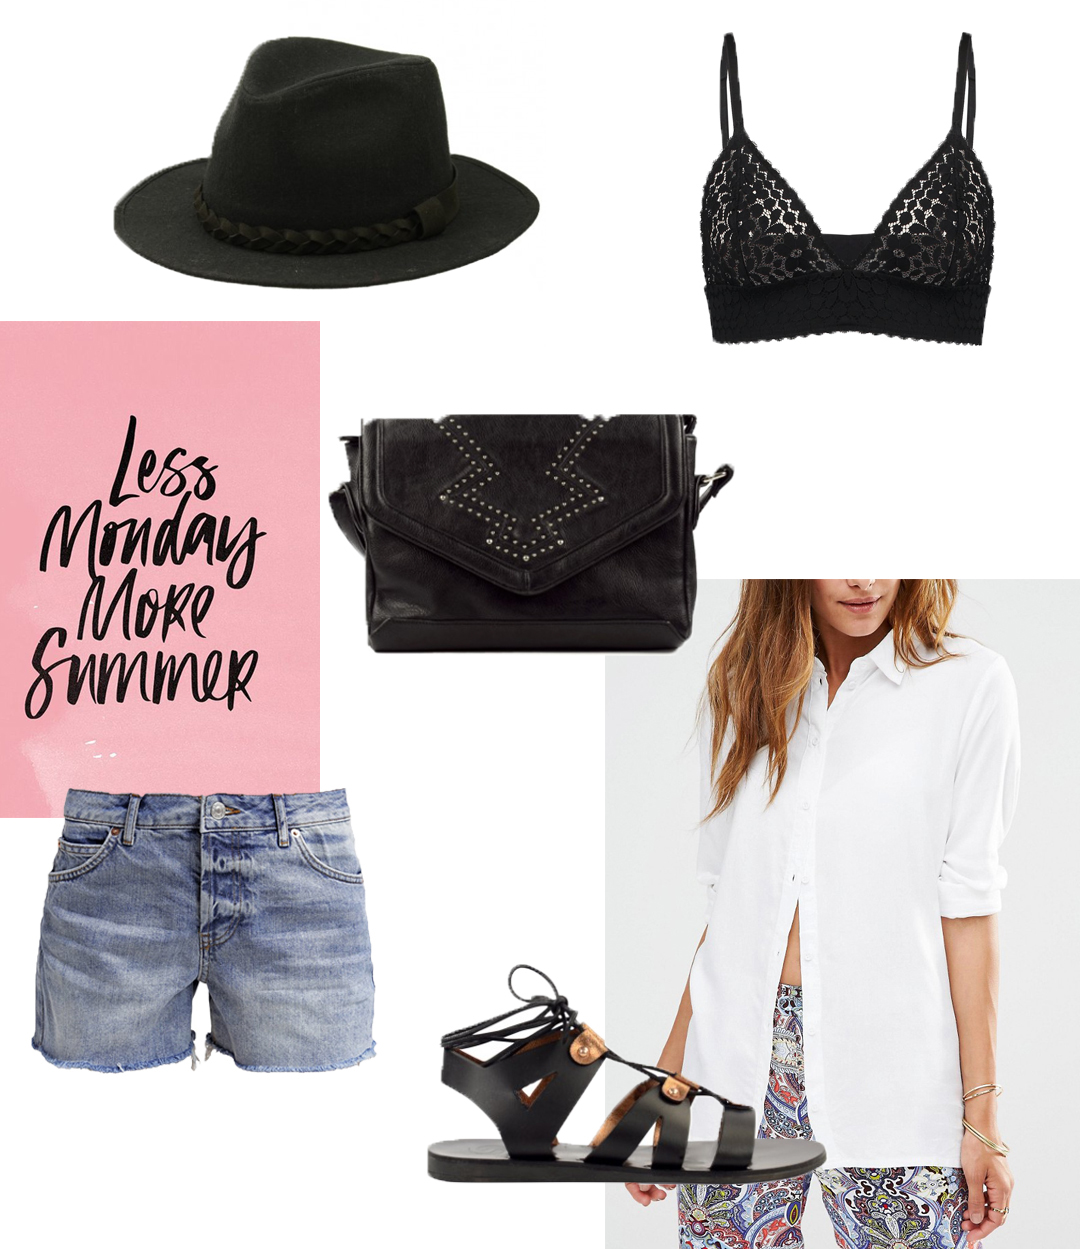 Festival outfit, inspiration, sacha shoes, bohemian, style, fedora hat, sandals, belgian fashion blogger, belgische modeblogger